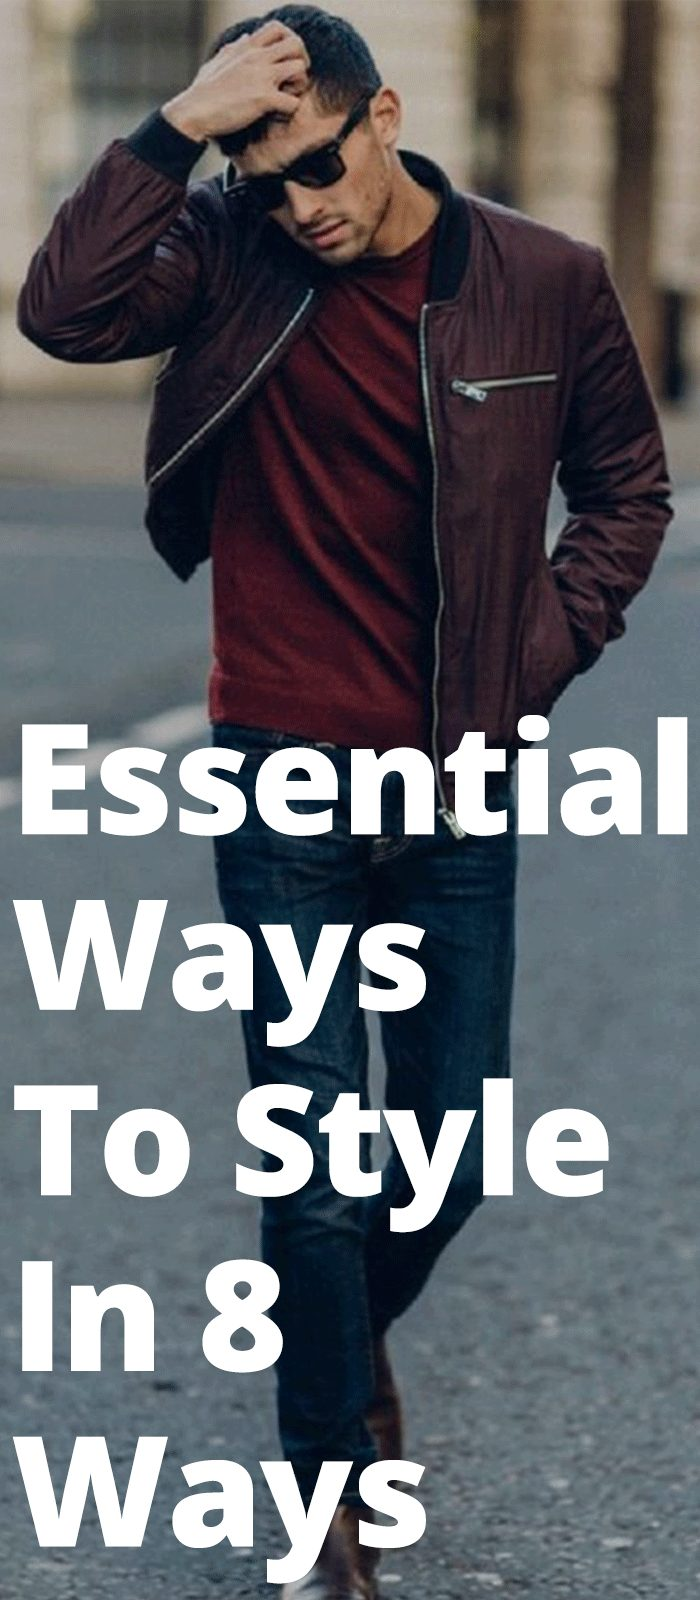 Essential Ways To Style In 8 Ways